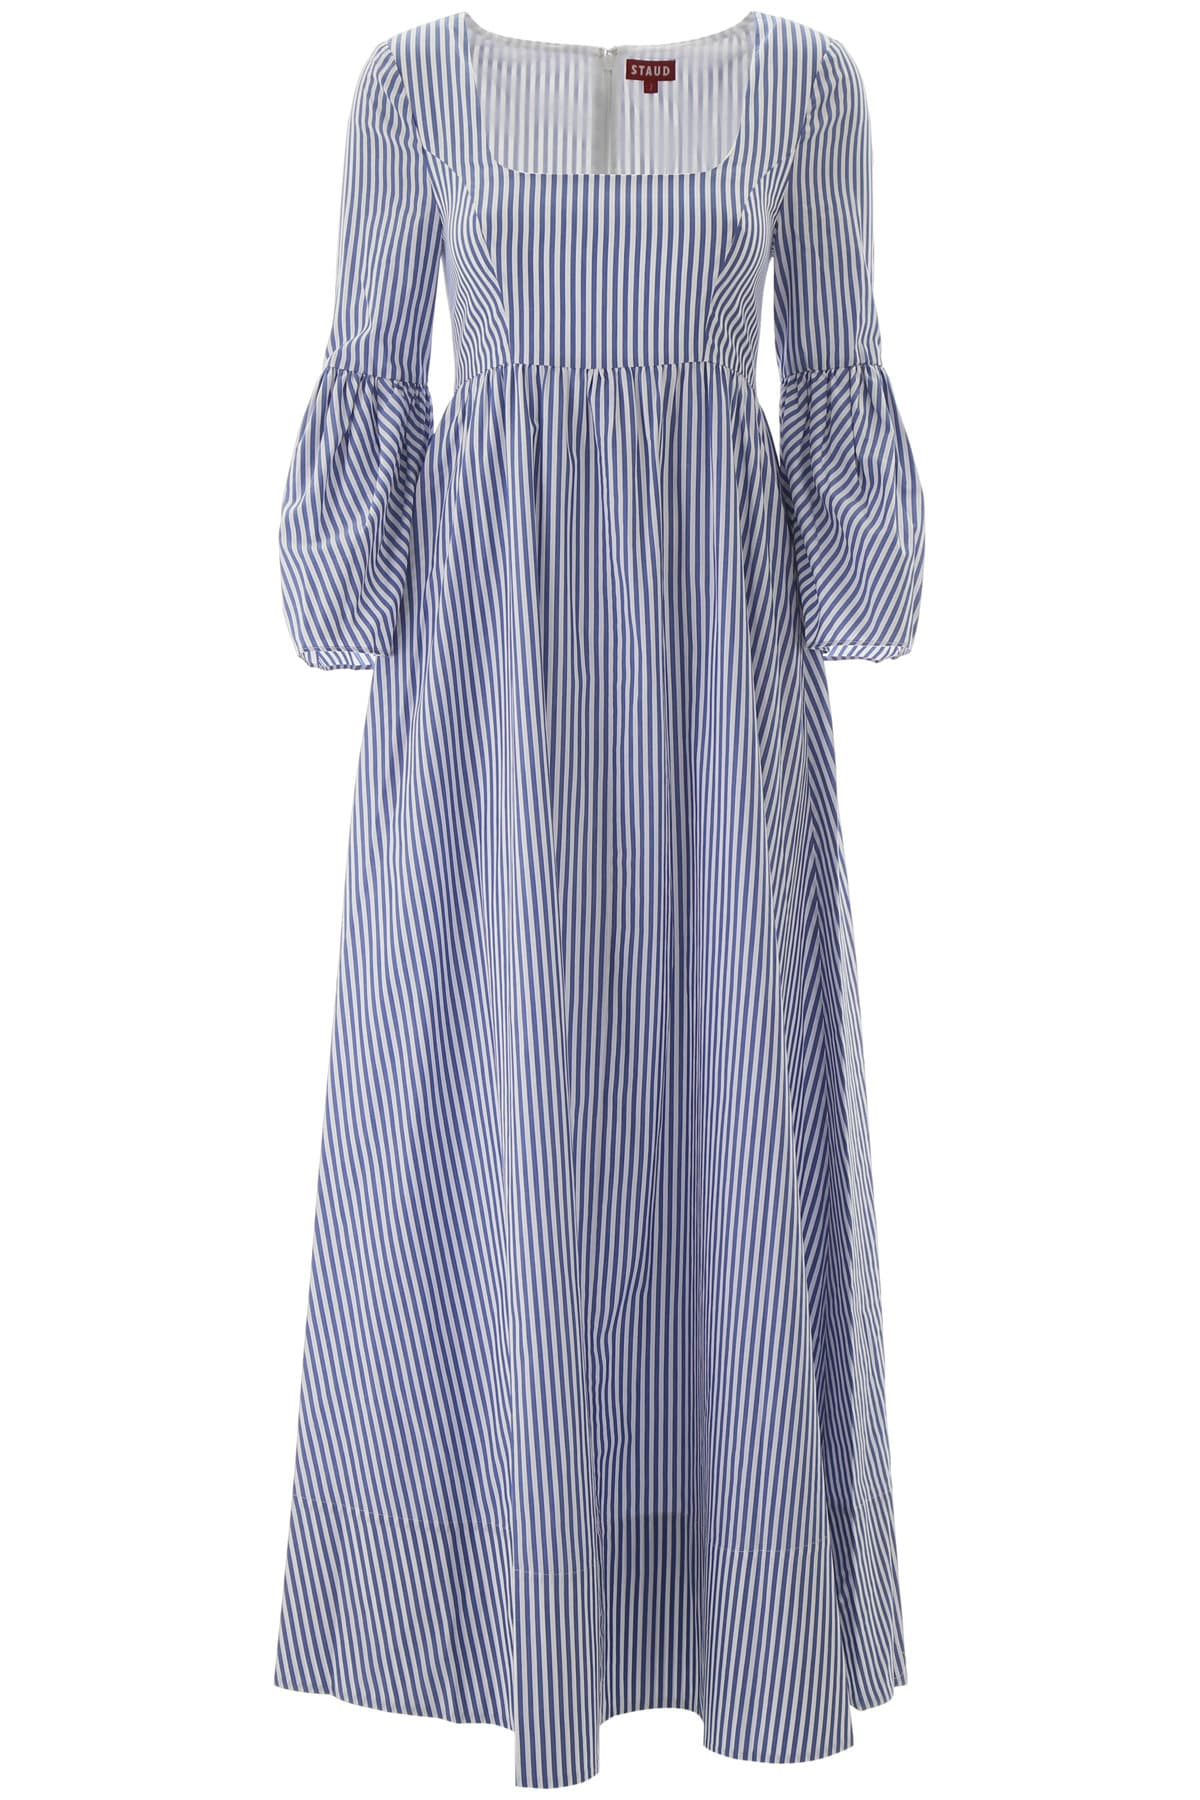 Buy STAUD Plumeria Striped Dress online, shop STAUD with free shipping